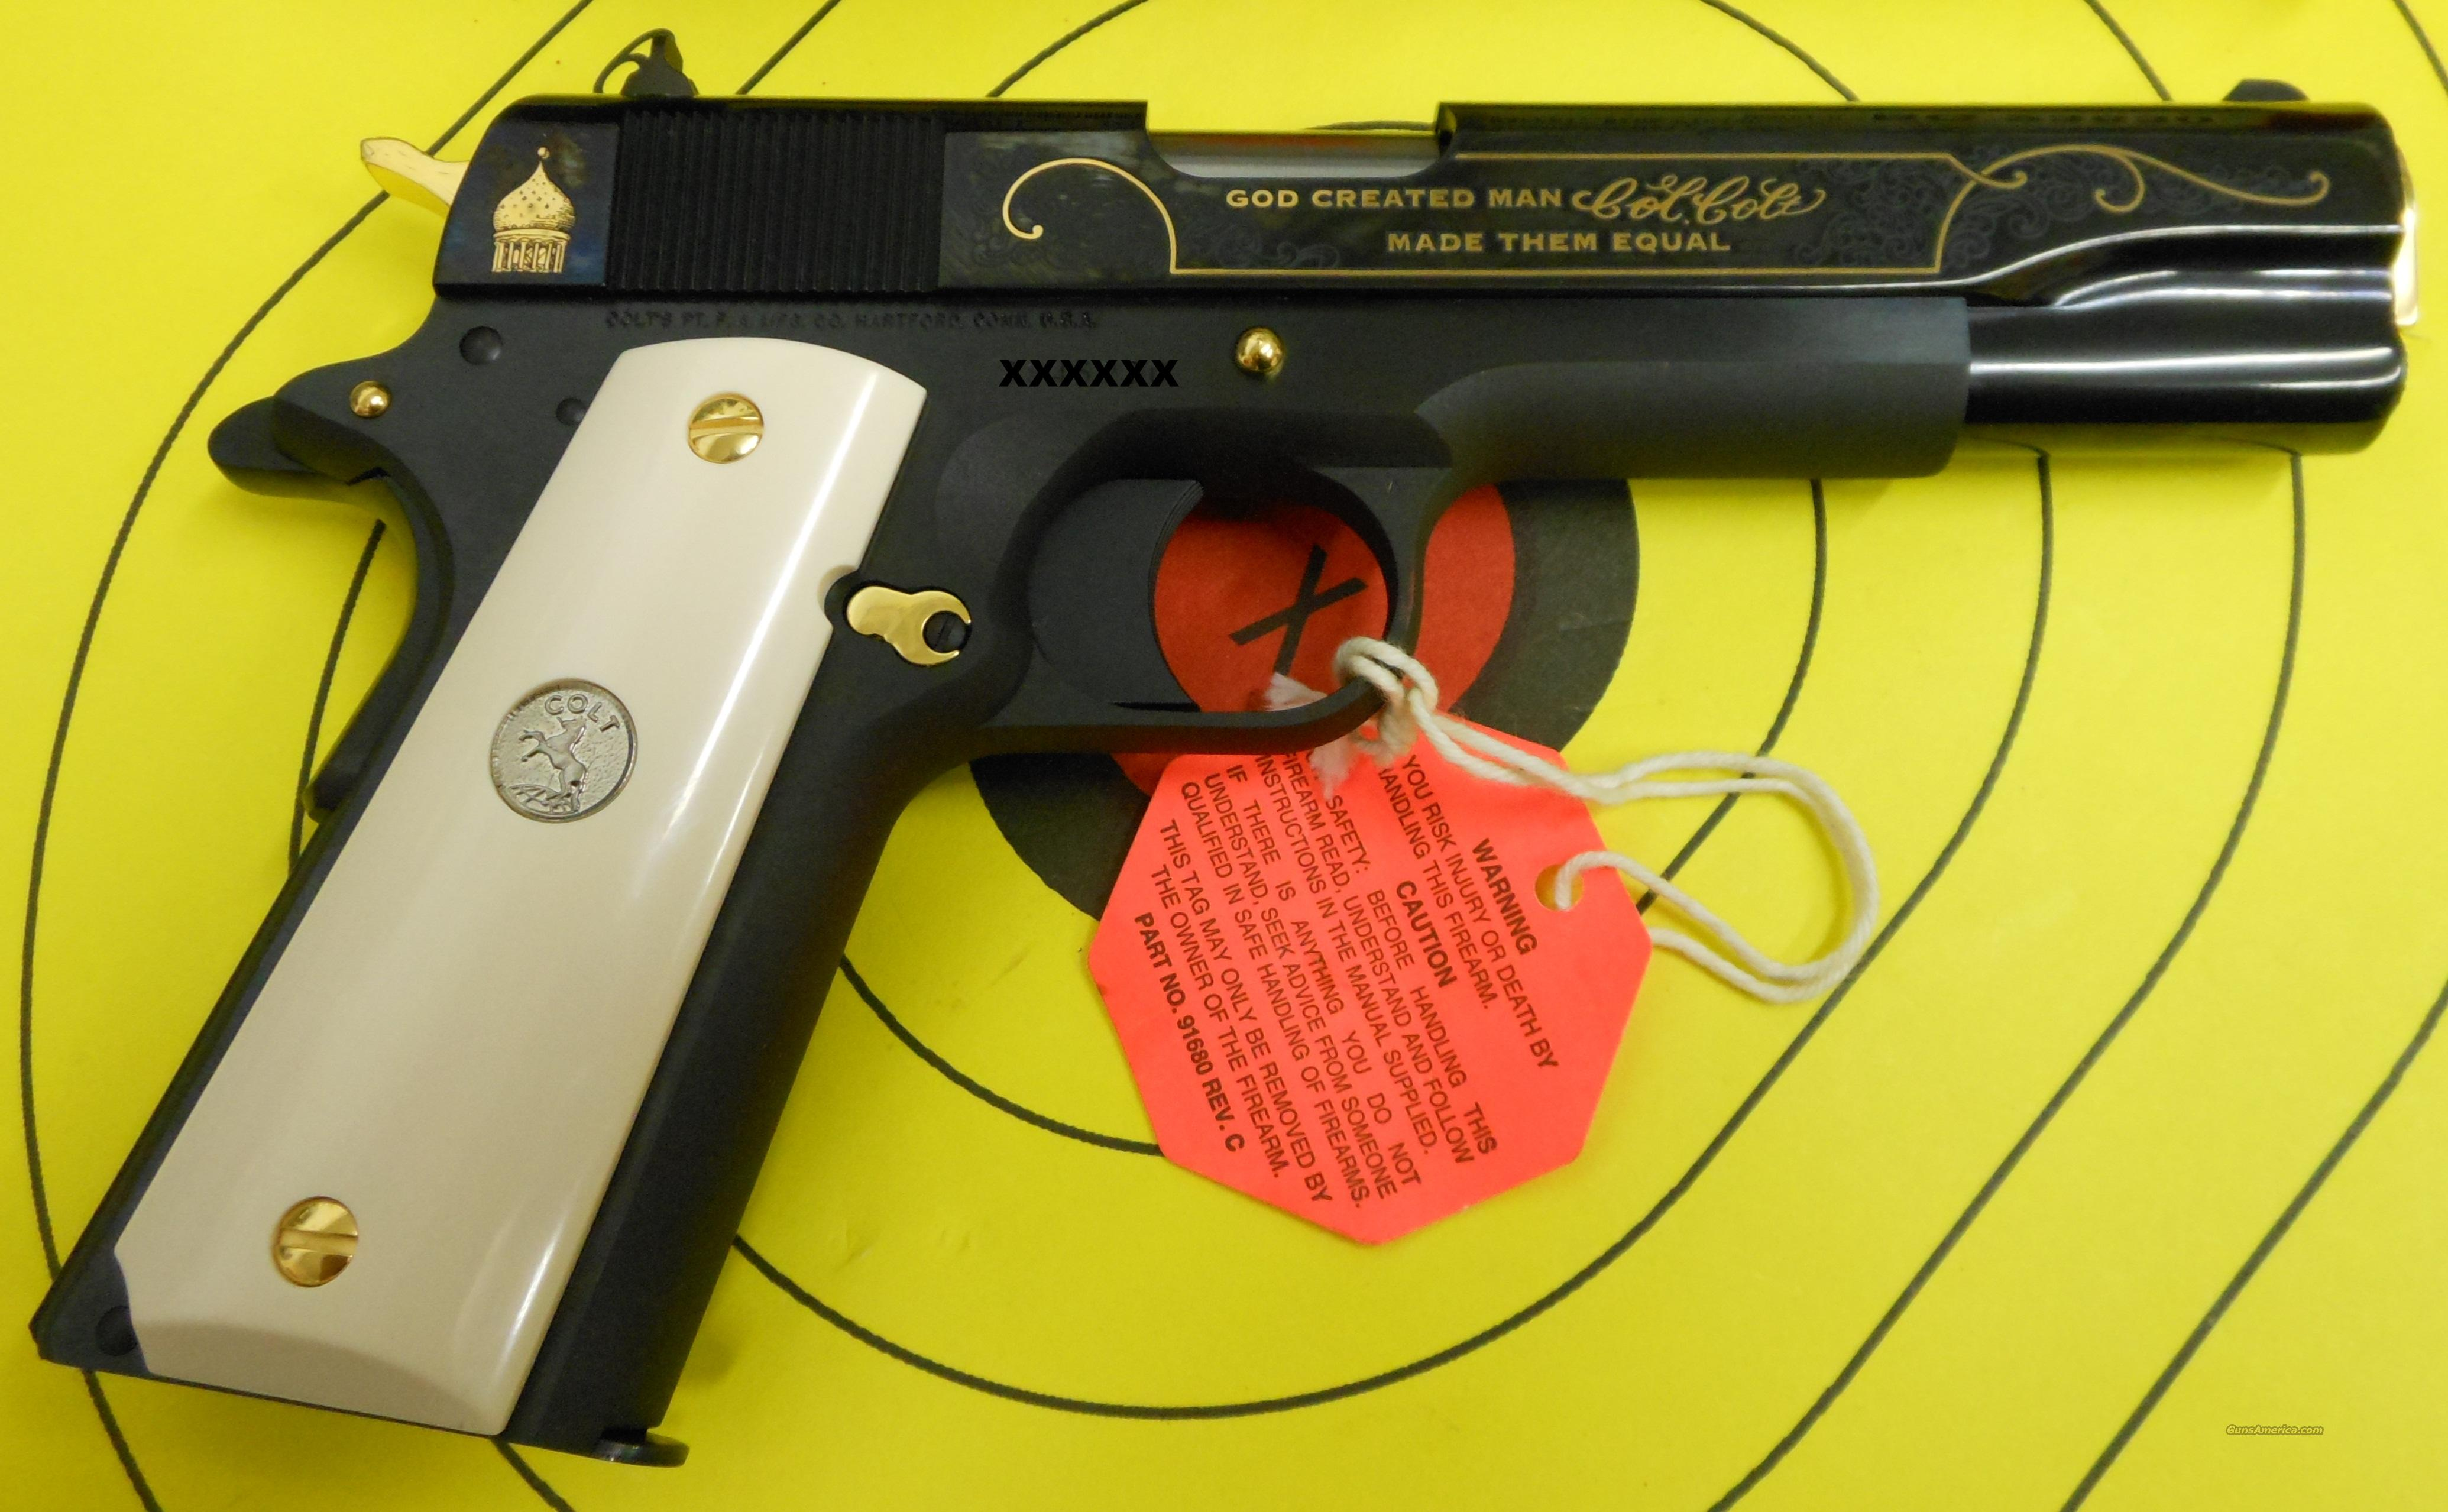 "COLT GOVERNMENT MODEL 1911 45ACP PISTOL (01991) WITH GOLD EMBELLISHMENTS ""GOD CREATED MAN, COL. COLT MADE THEM EQUAL""  Guns > Pistols > Colt Automatic Pistols (1911 & Var)"